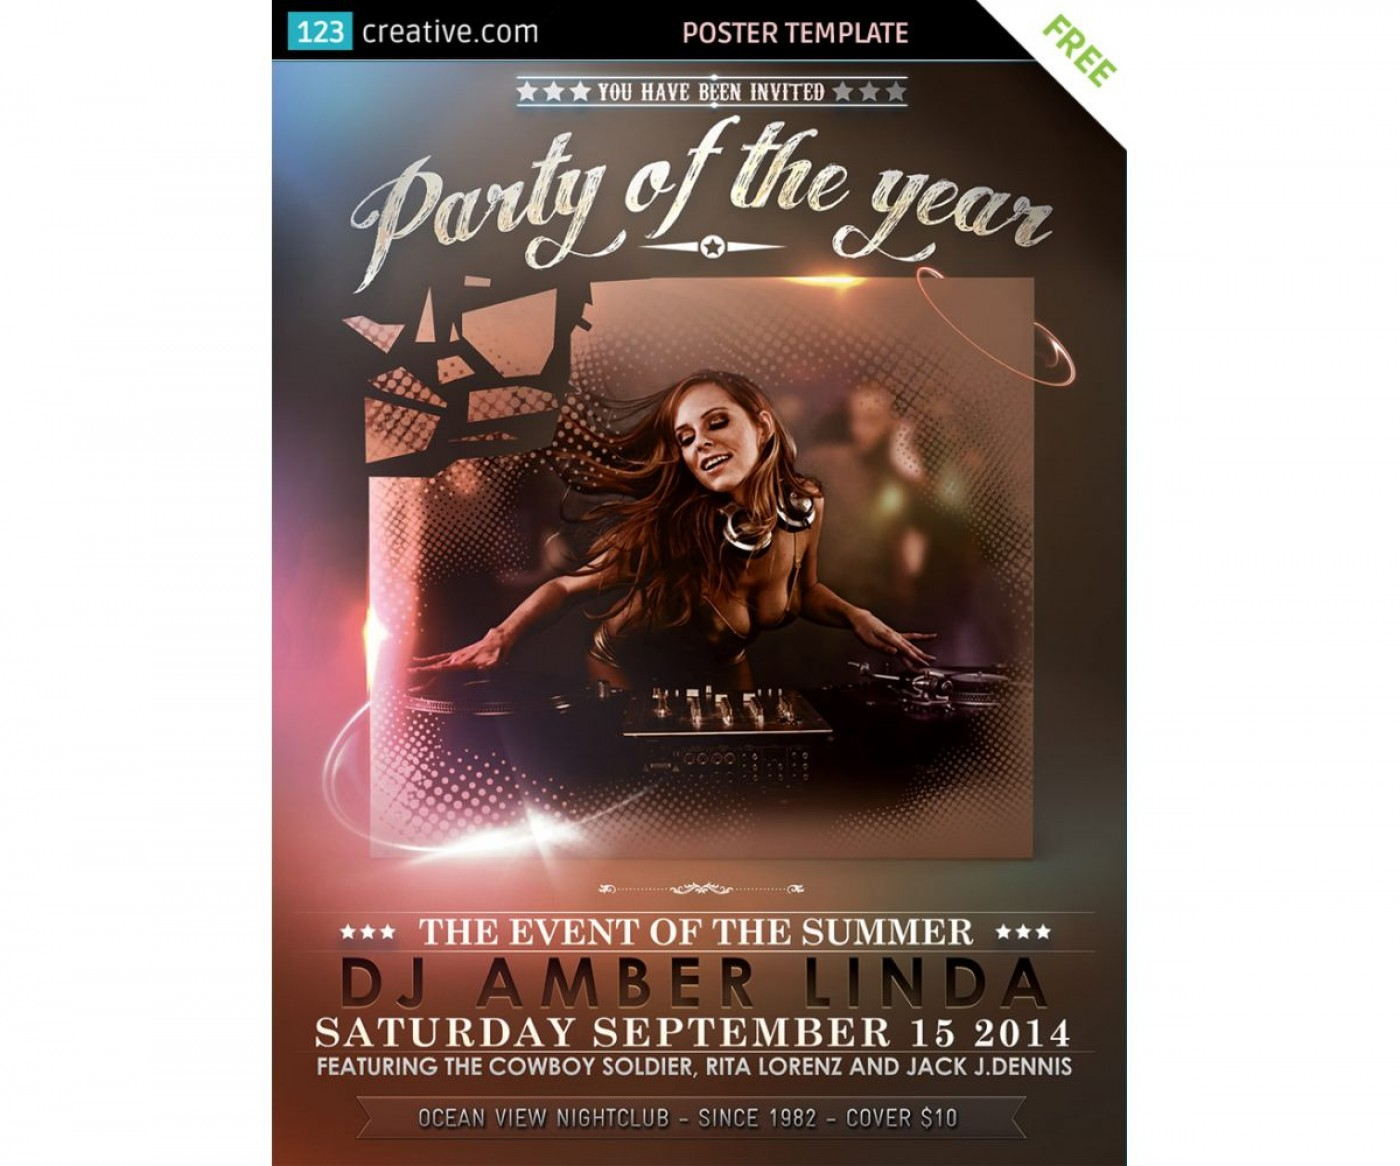 009 Excellent Party Event Flyer Template Free Download Concept 1400